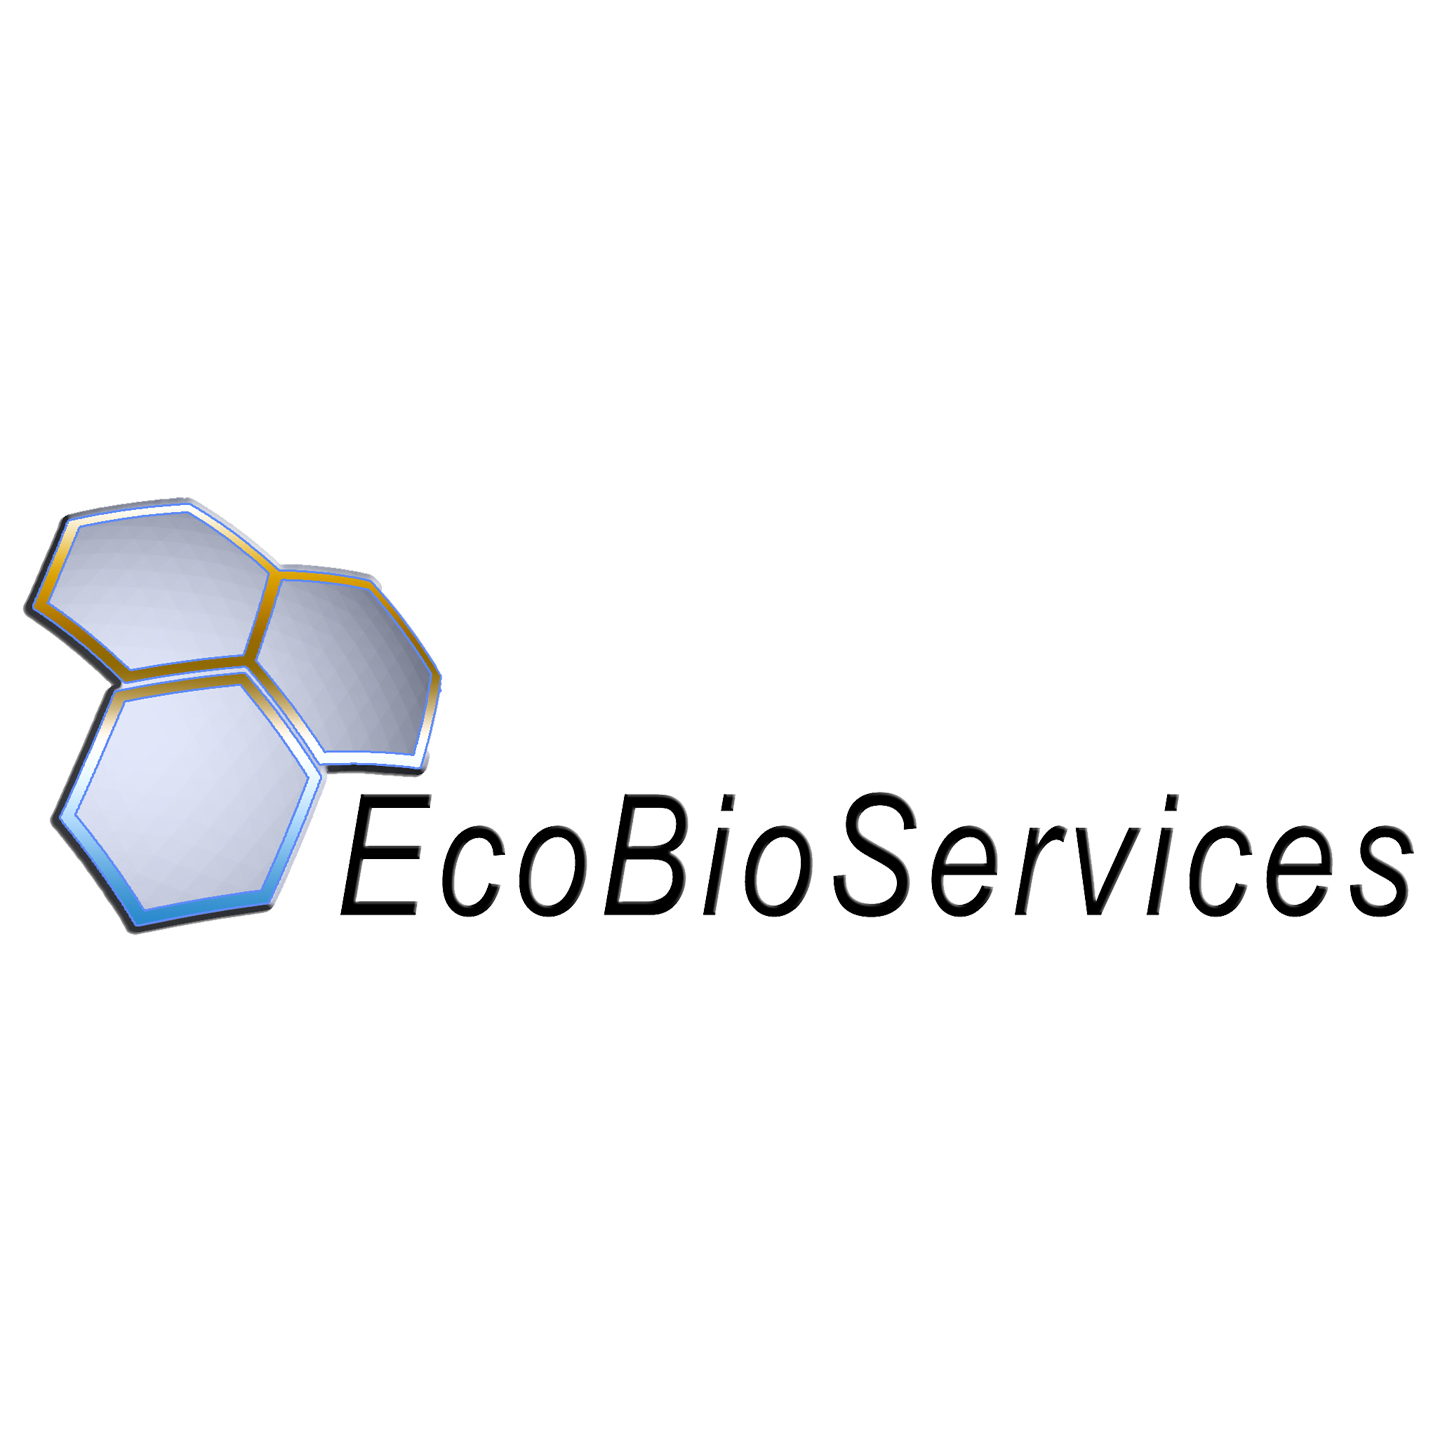 ECOBIOSERVICES AND RESEARCHES S.R.L.